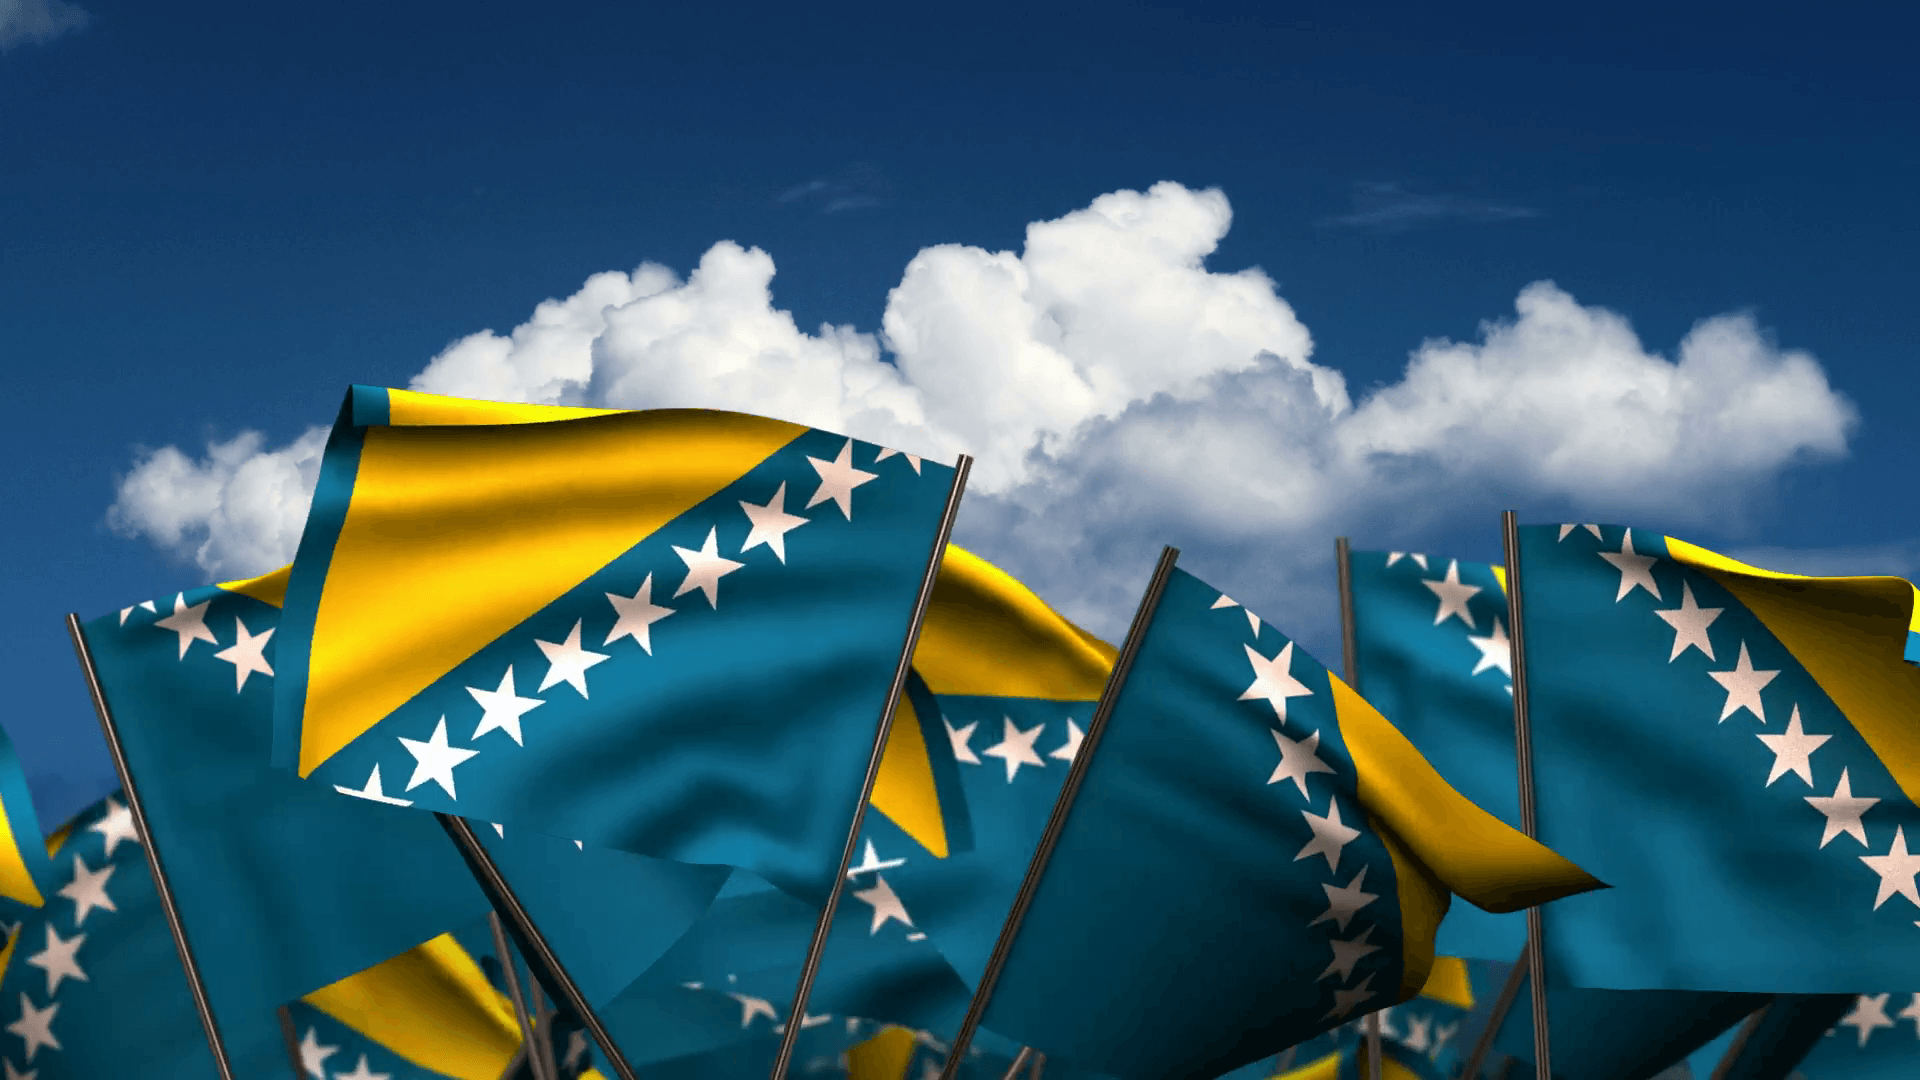 Waving Bosnia and Herzegovinan Flags Motion Background - Storyblocks ...